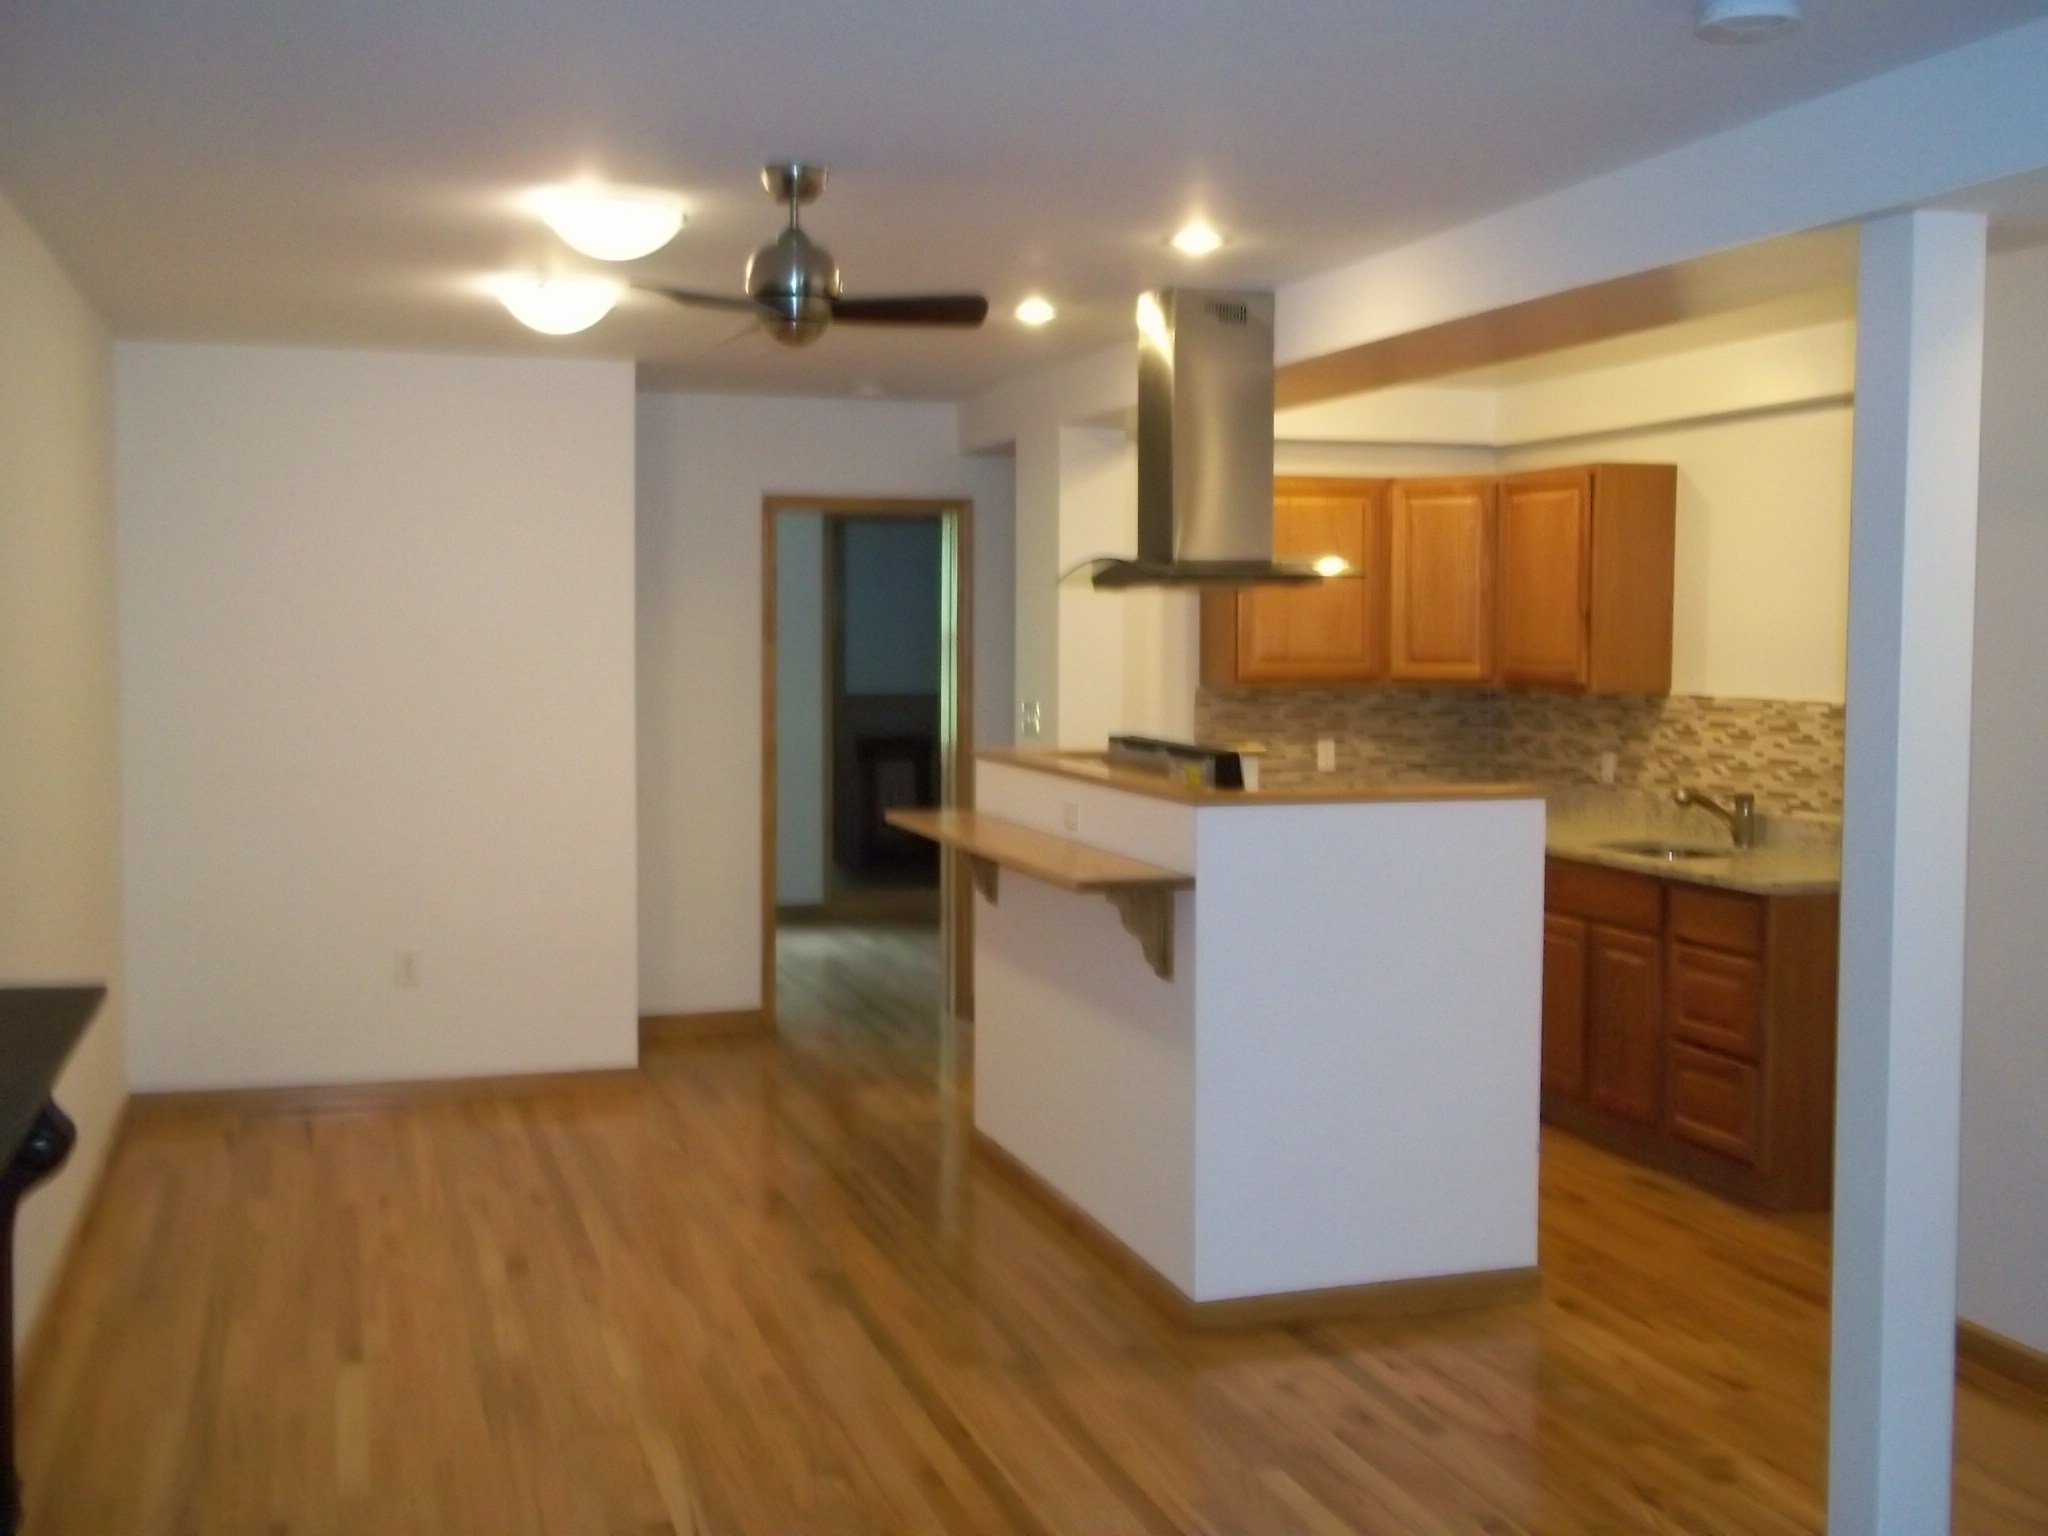 Stuyvesant heights 1 bedroom apartment for rent brooklyn for 1 bedroom apartments for sale nyc